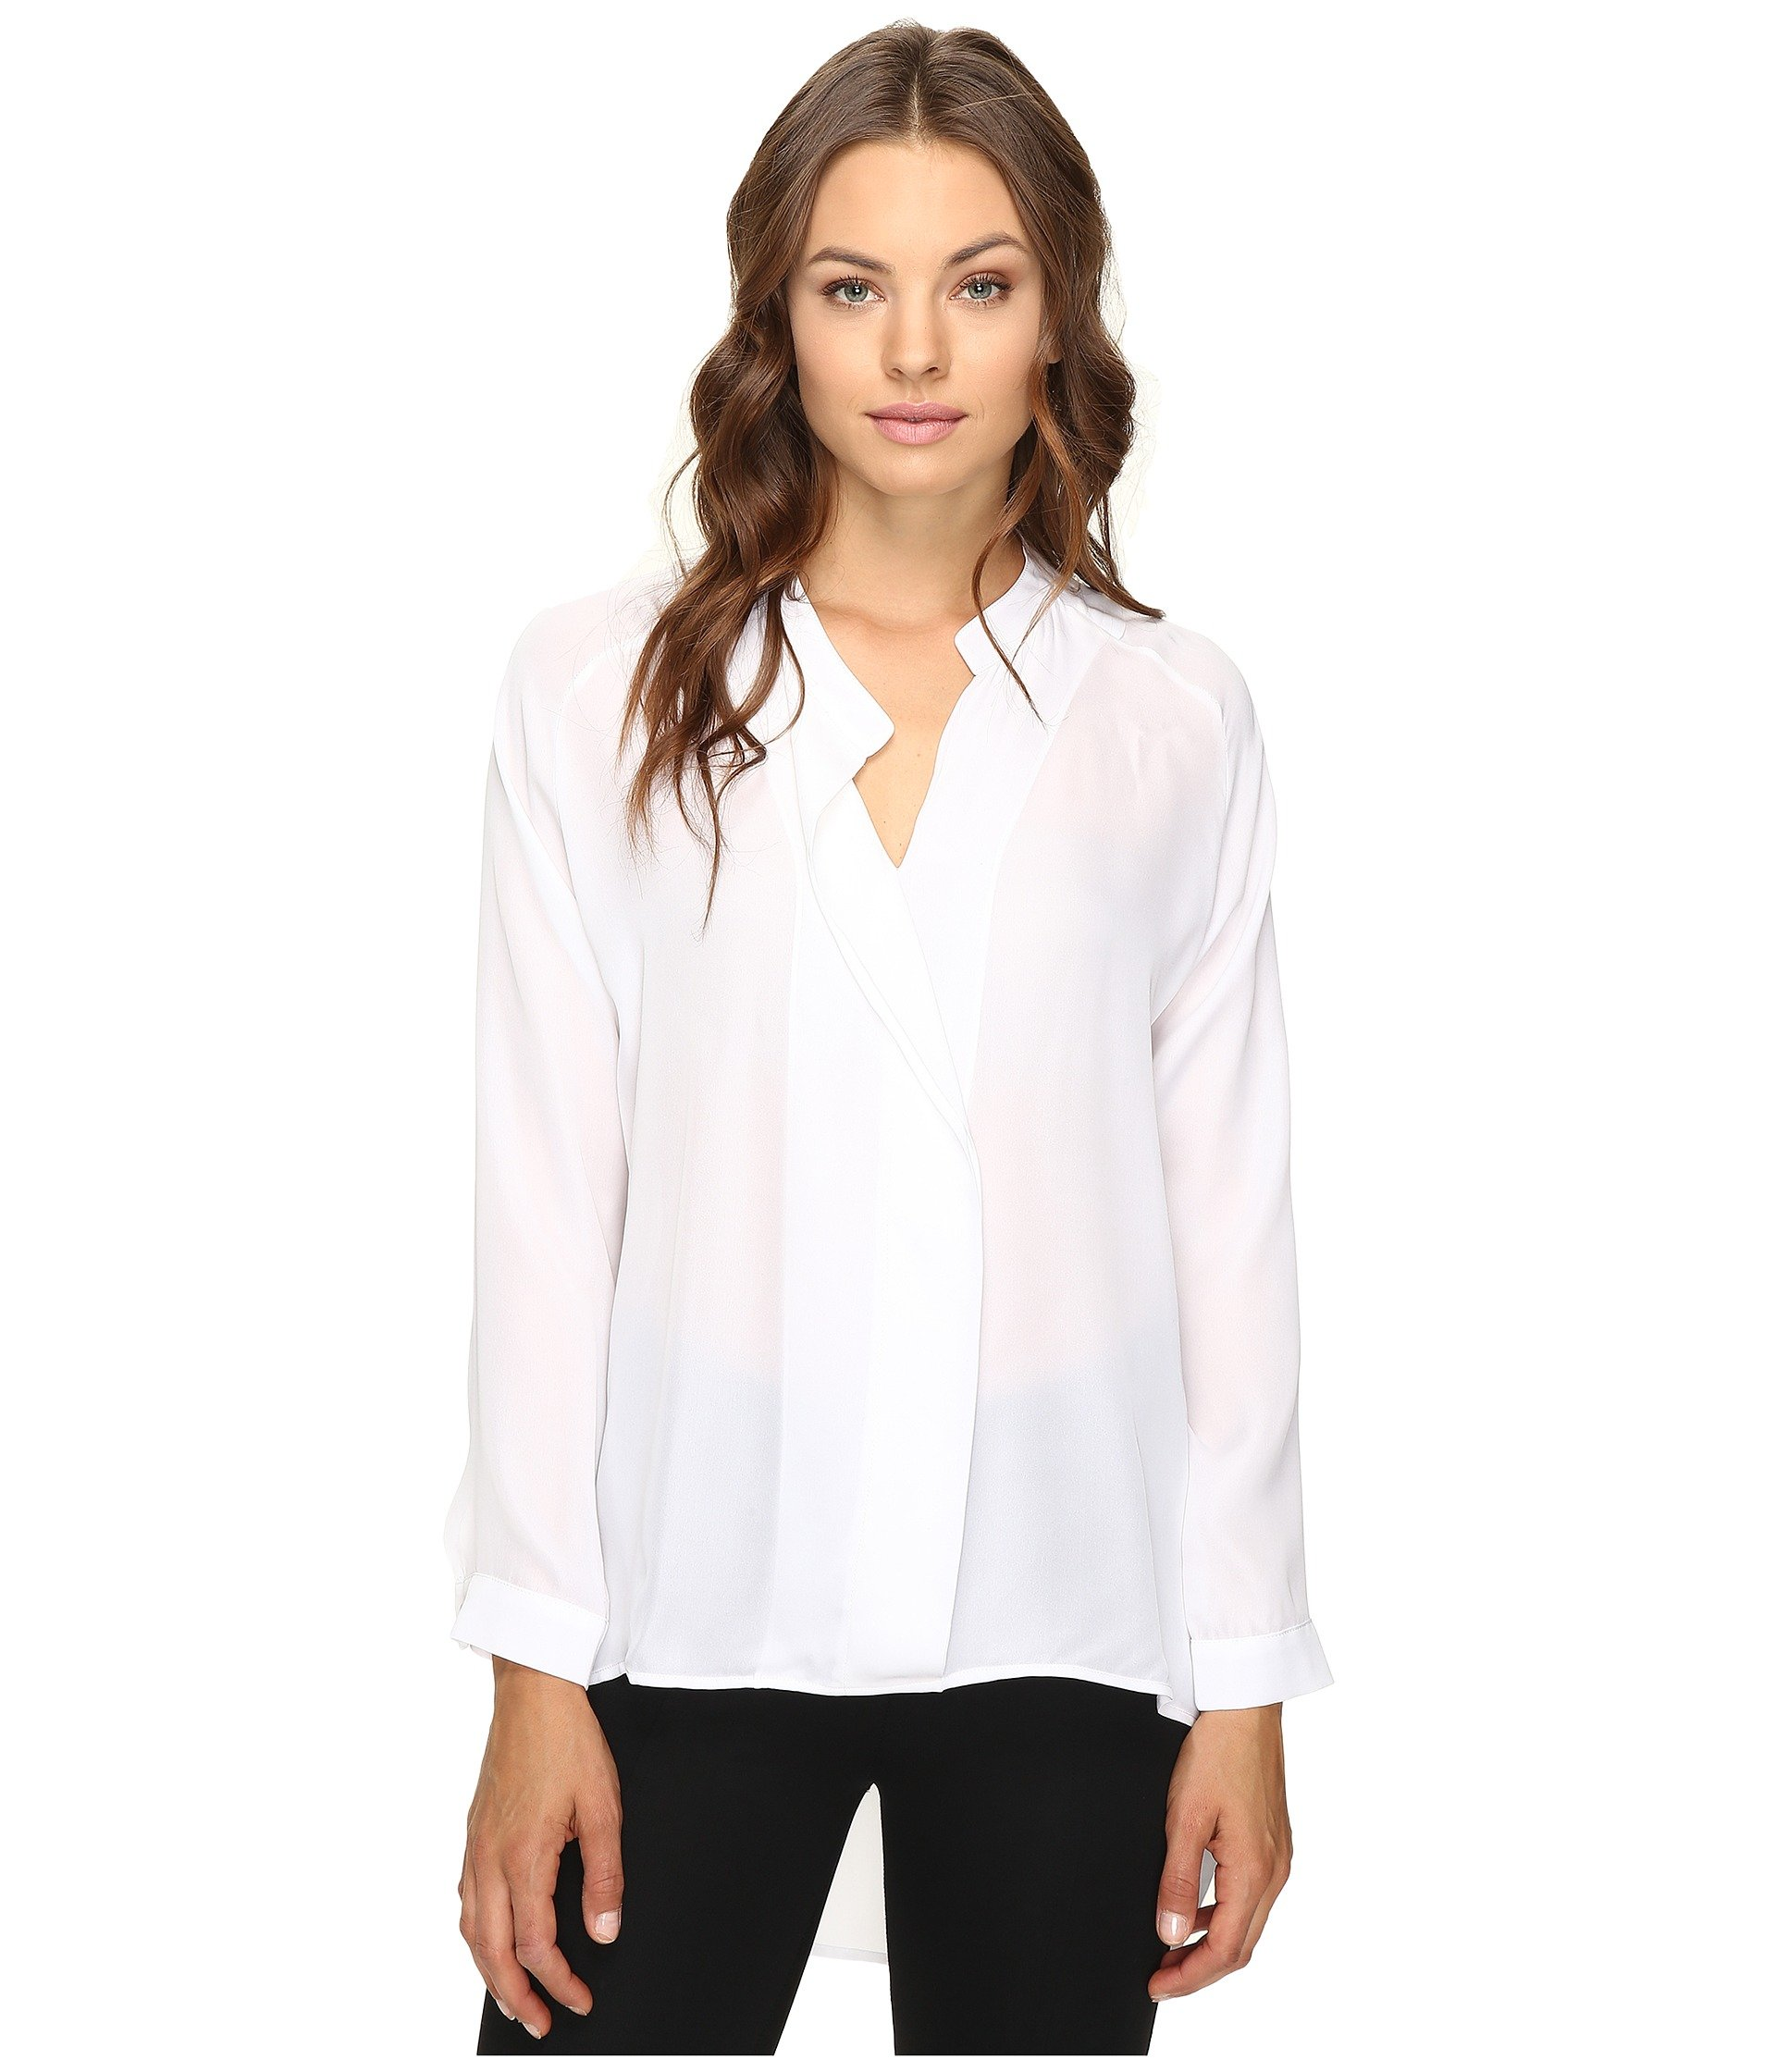 HEATHER Long Sleeve Silk Collared Blouse, White